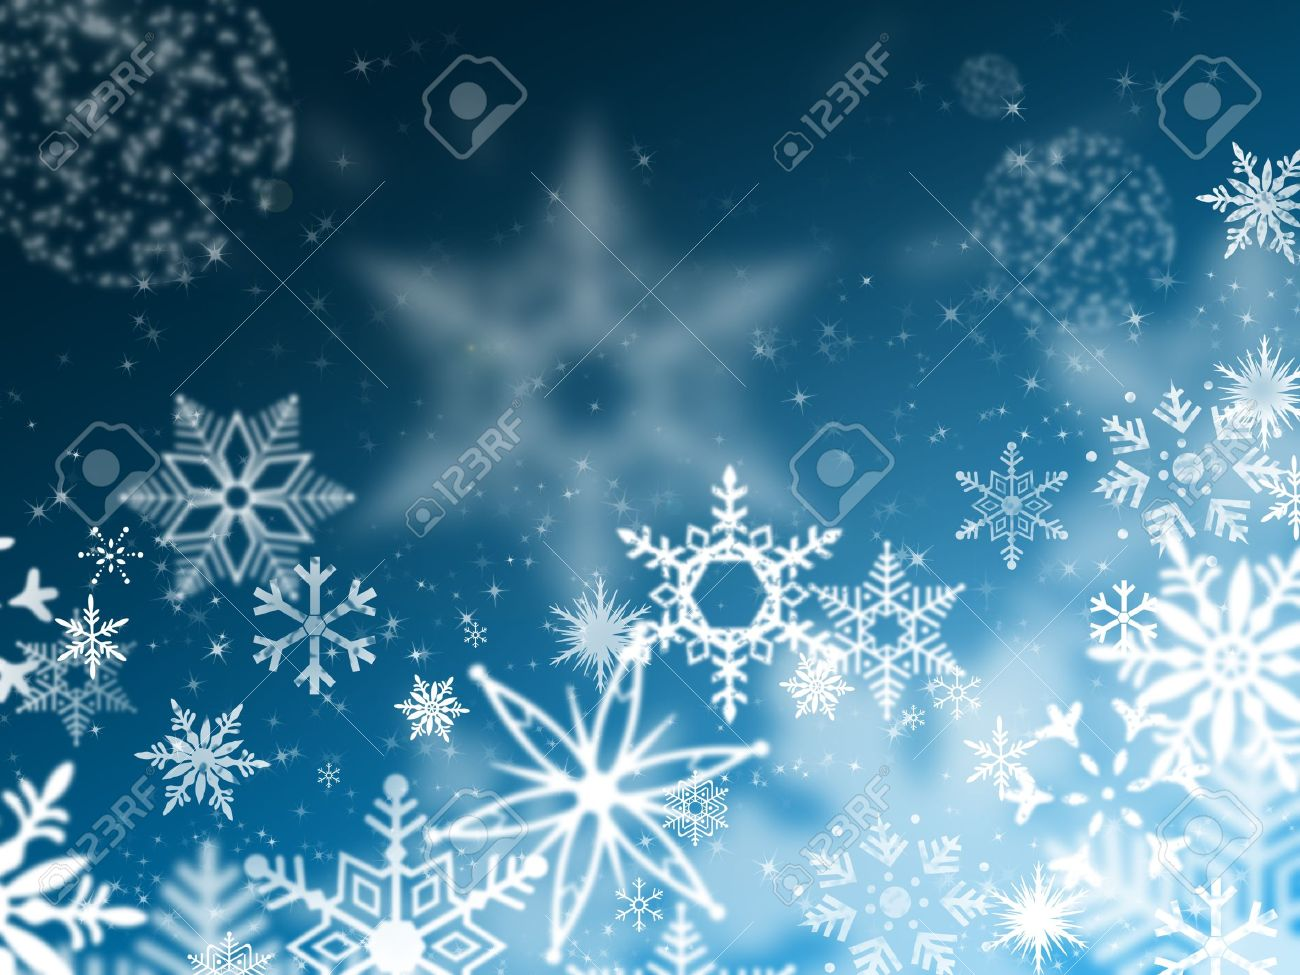 illustration of snowflakes falling from the blue sky night stock